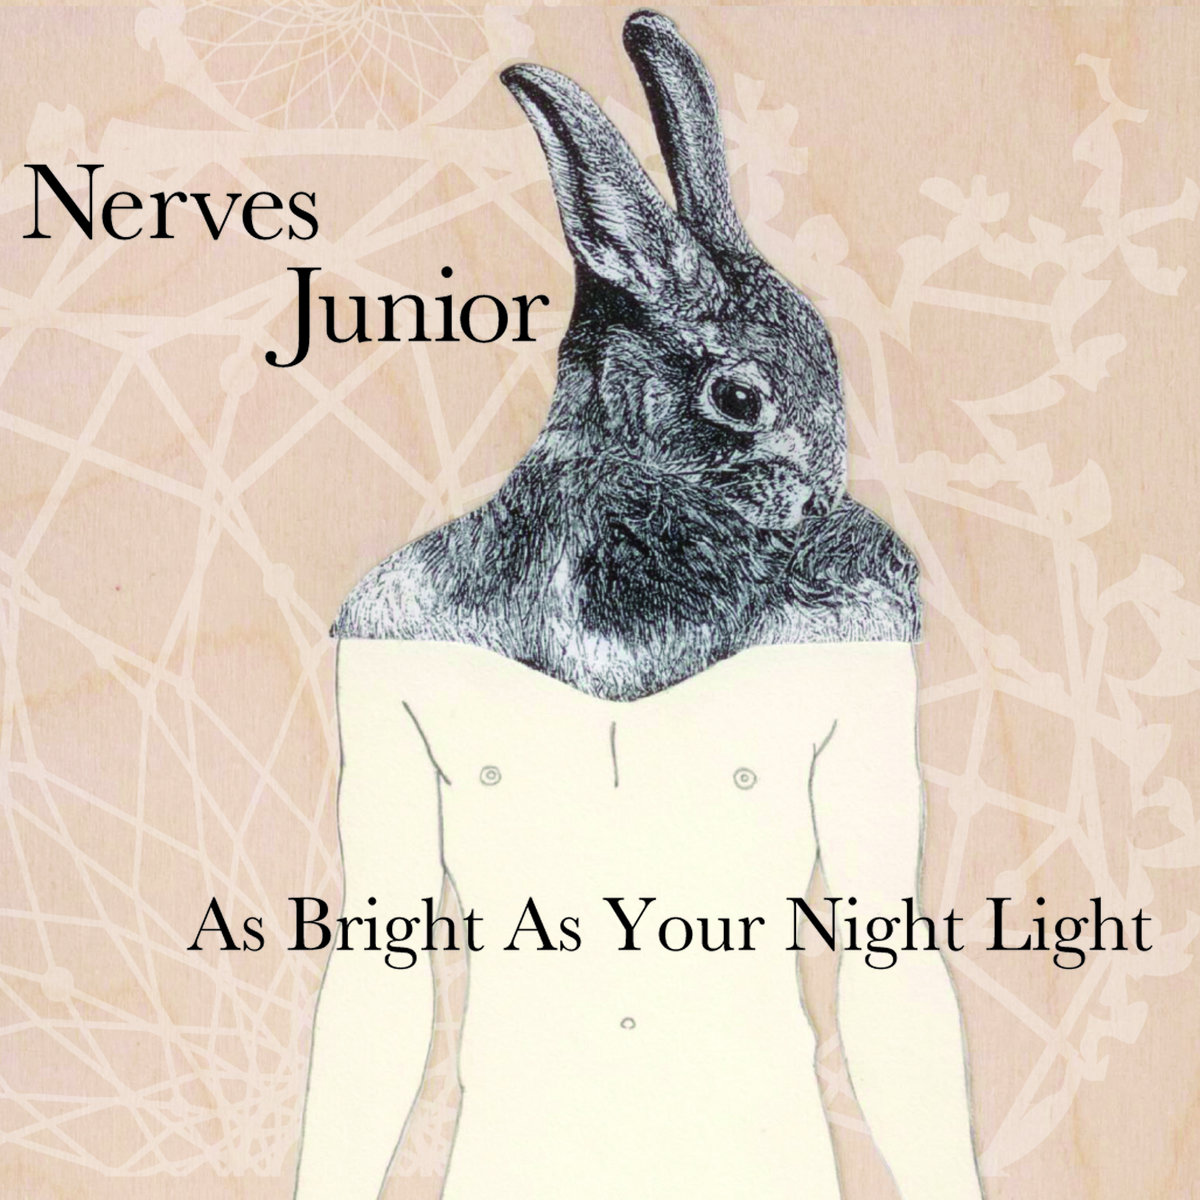 From As Bright As Your Night Light By Nerves Junior